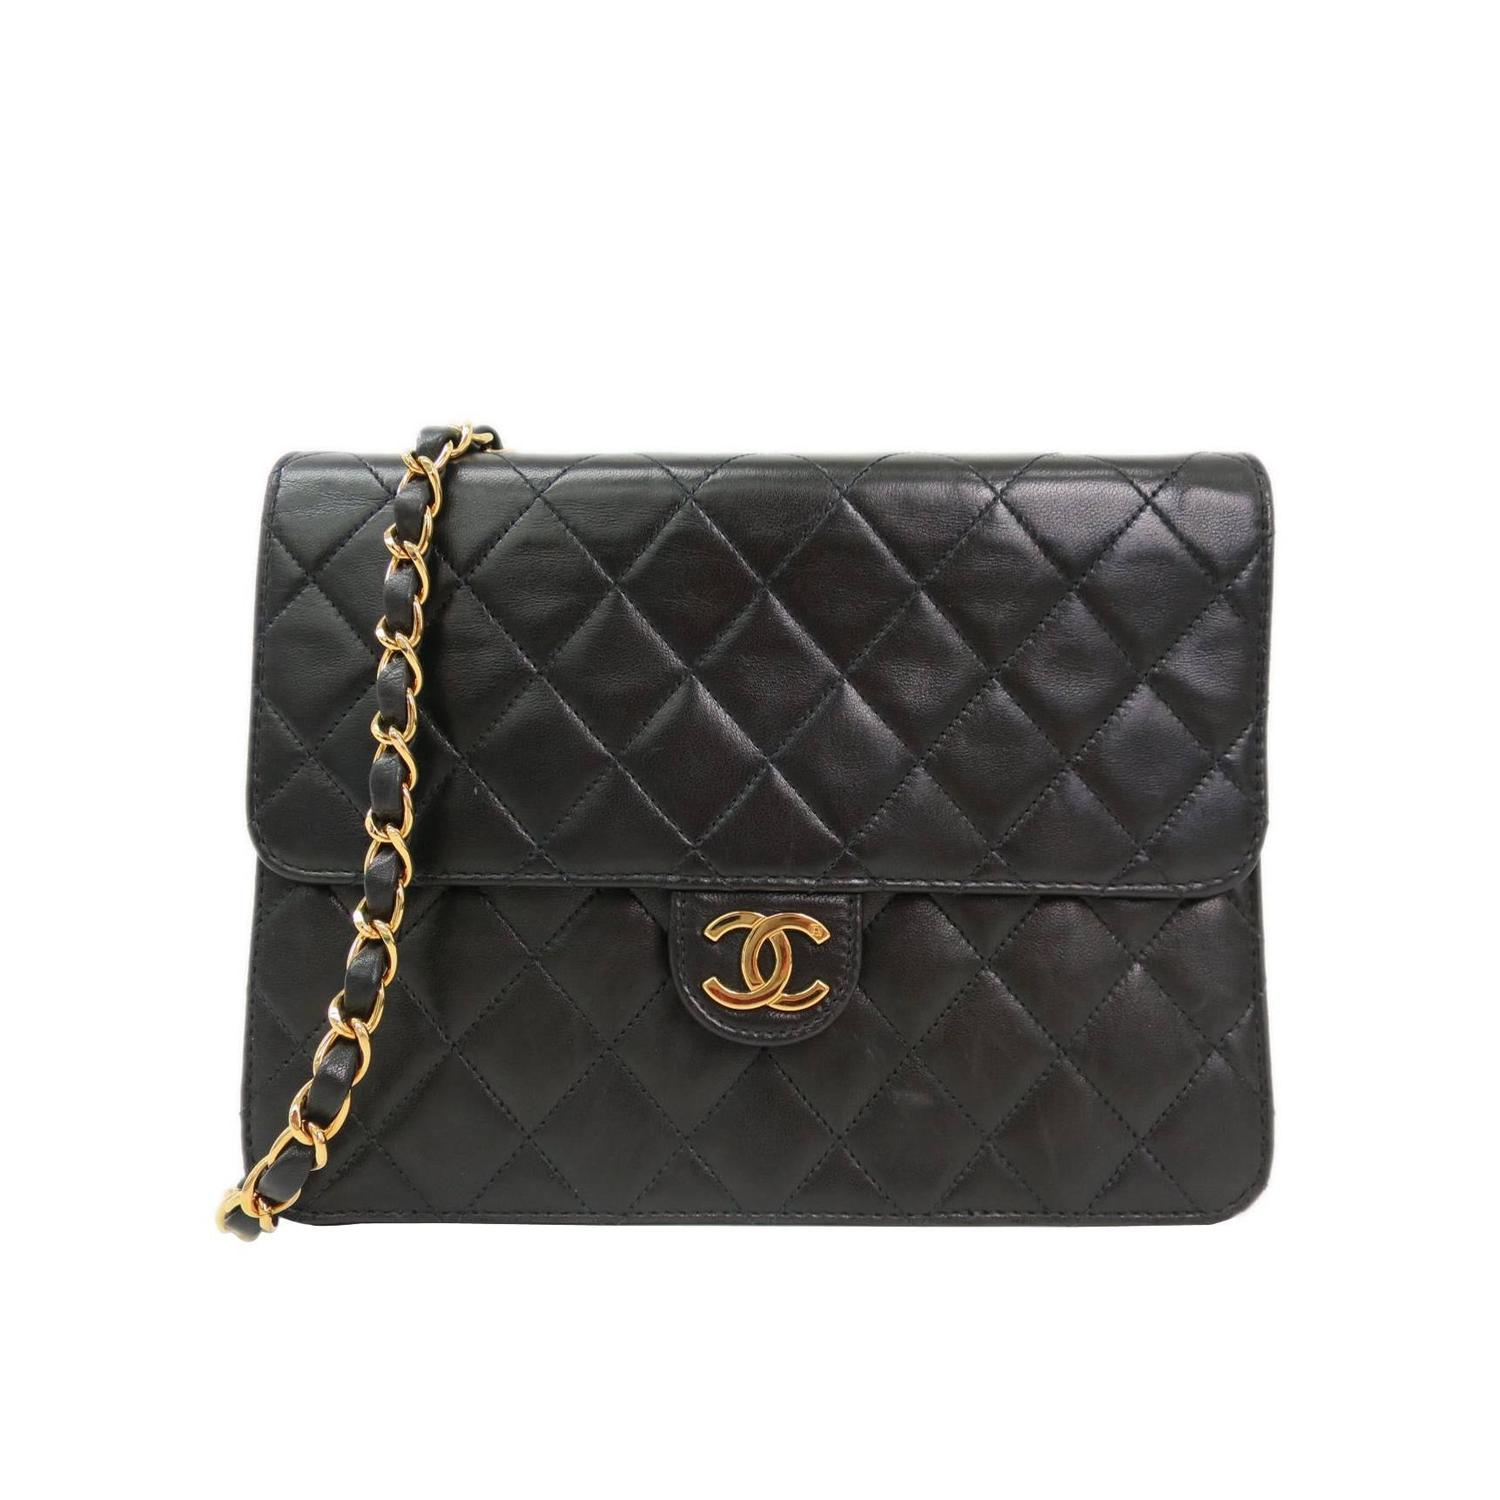 8bfd875ce723 Chanel Vintage Black Quilted Leather Shoulder Bag. Chanel Vintage Black  Quilted Lambskin Leather Flap Crossbody ...